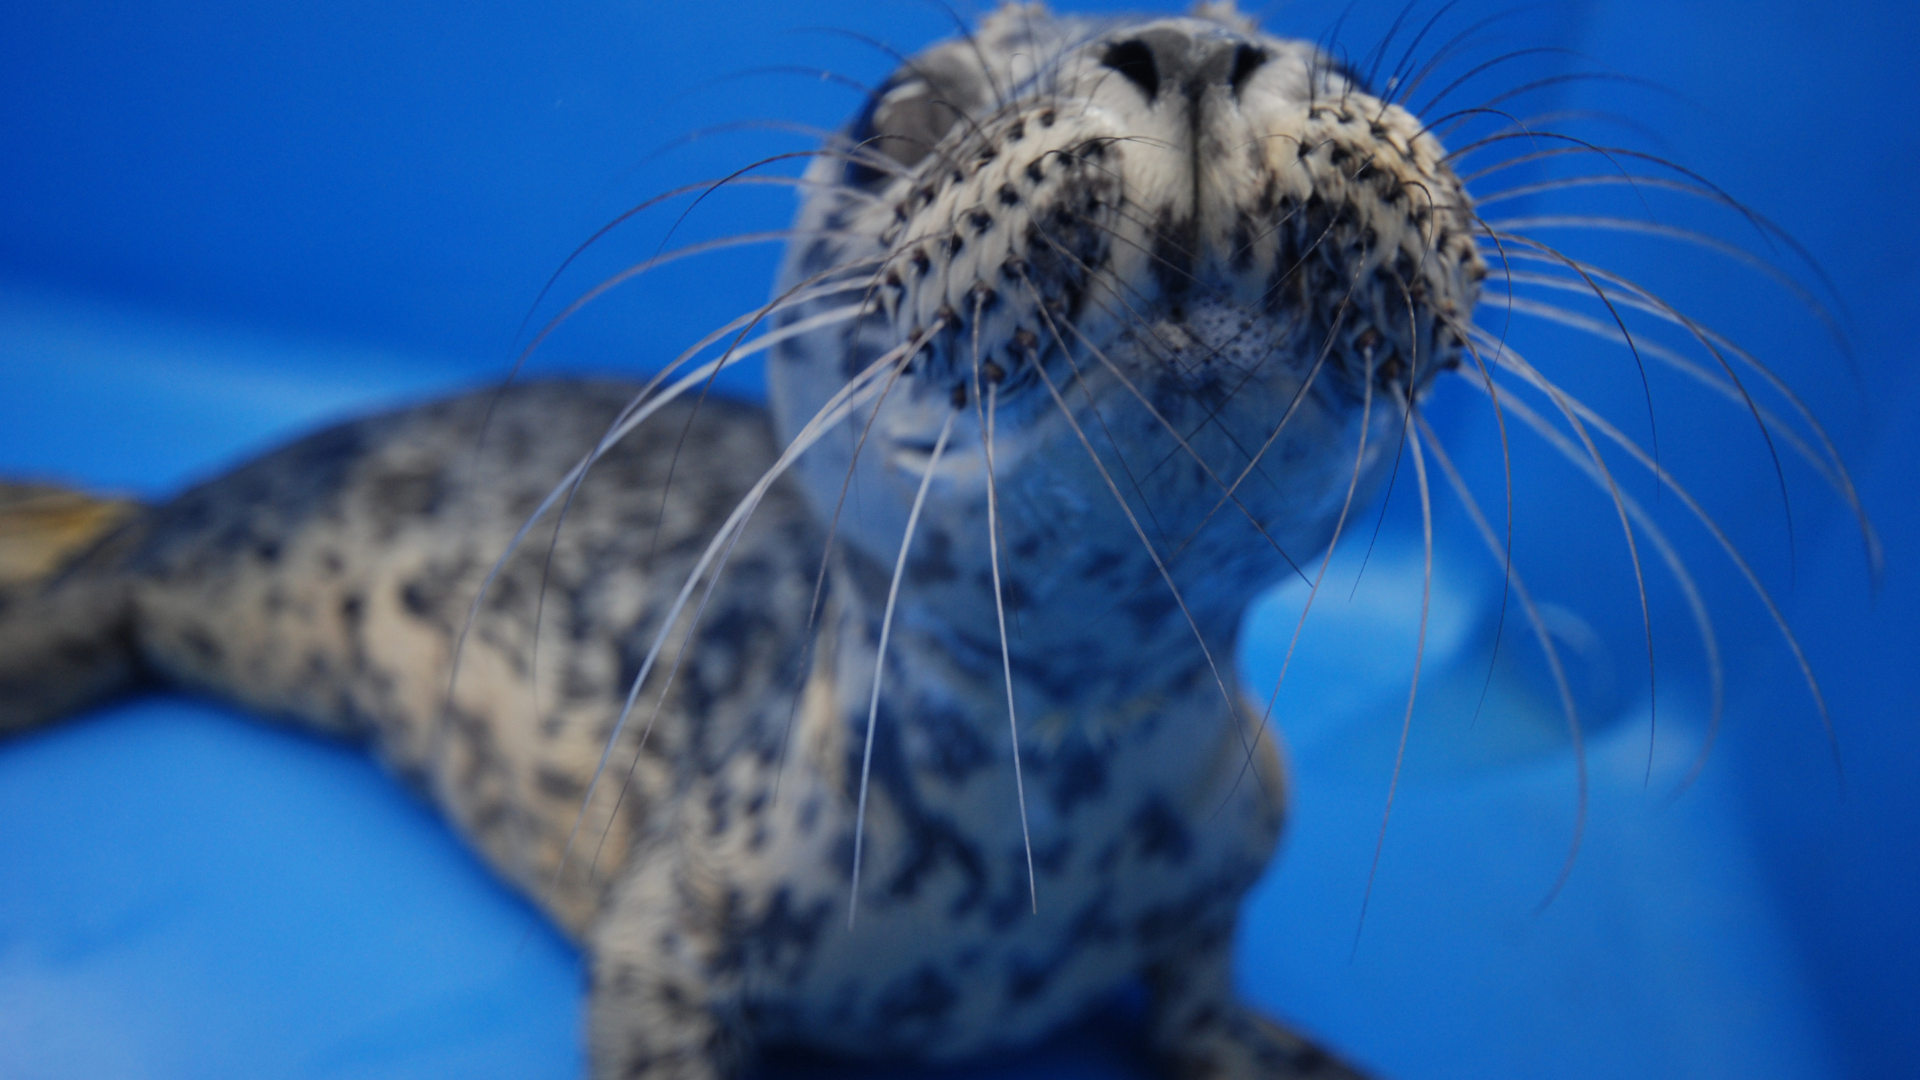 https://rfacdn.nz/zoo/assets/media/harbour-seal-rehab-in-vancouer.png